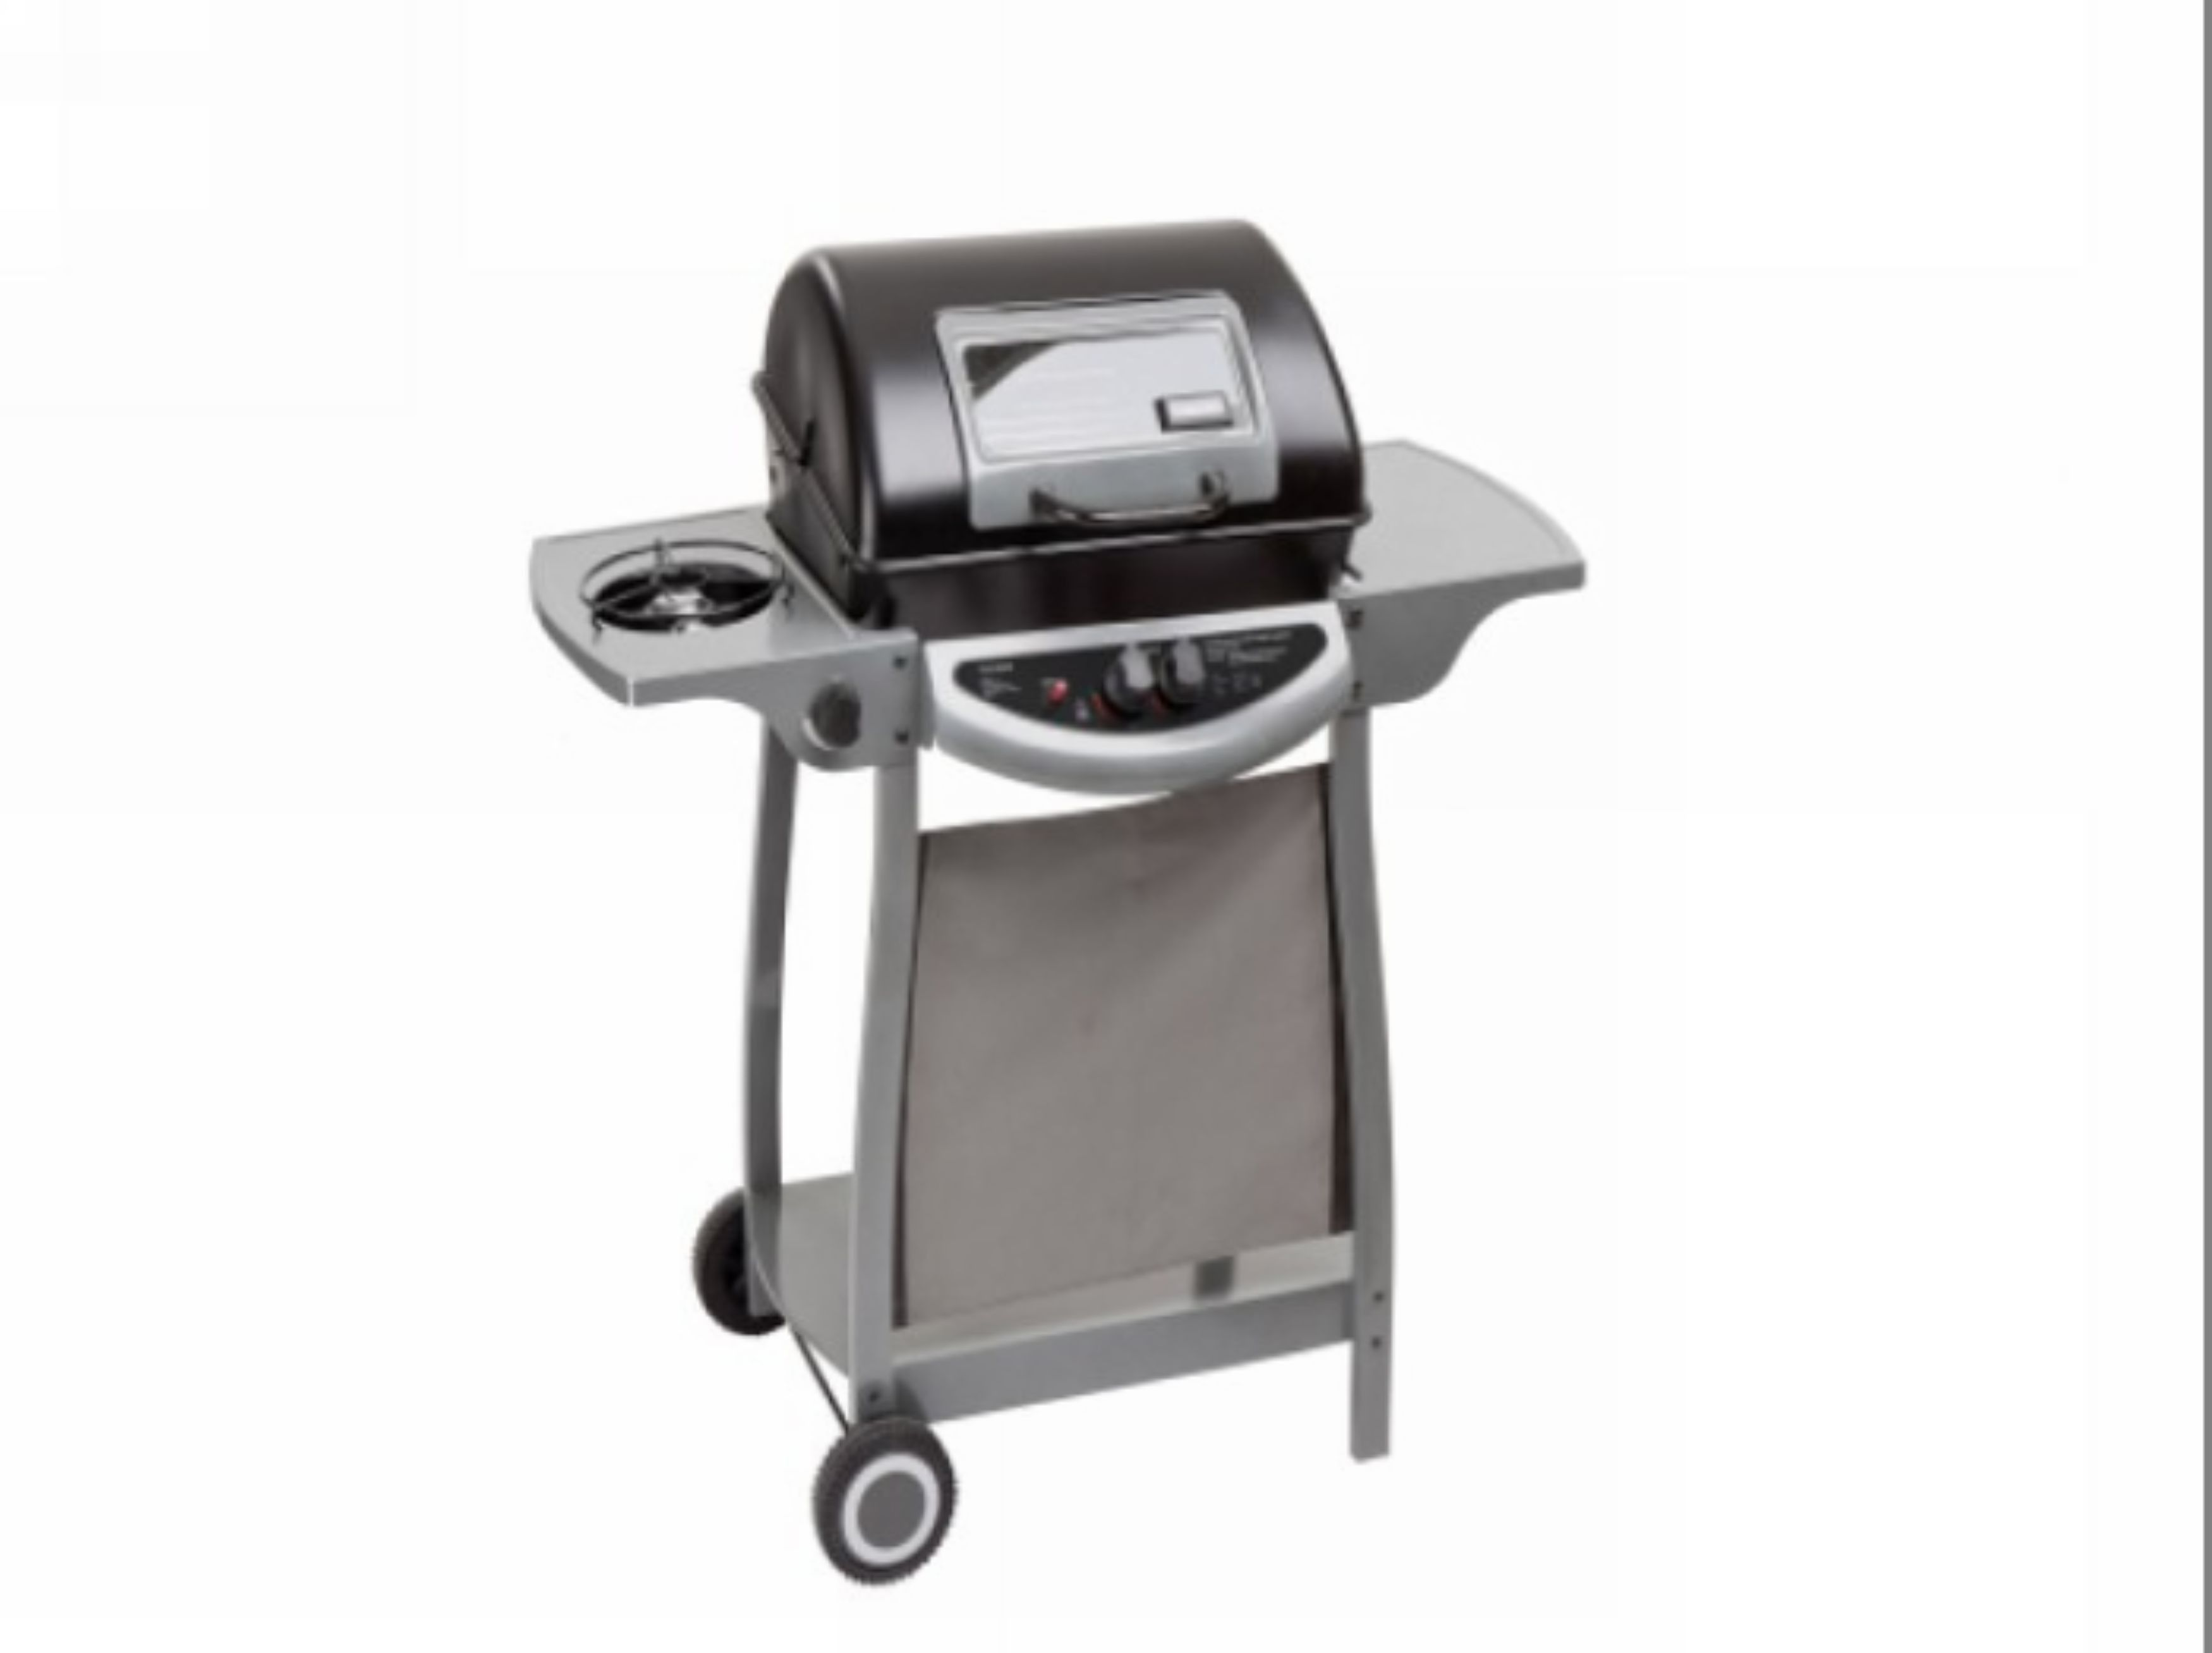 Landmann Gasgrill Wok : Landmann 2 burner portable gas bbq grill with side burner £129.99